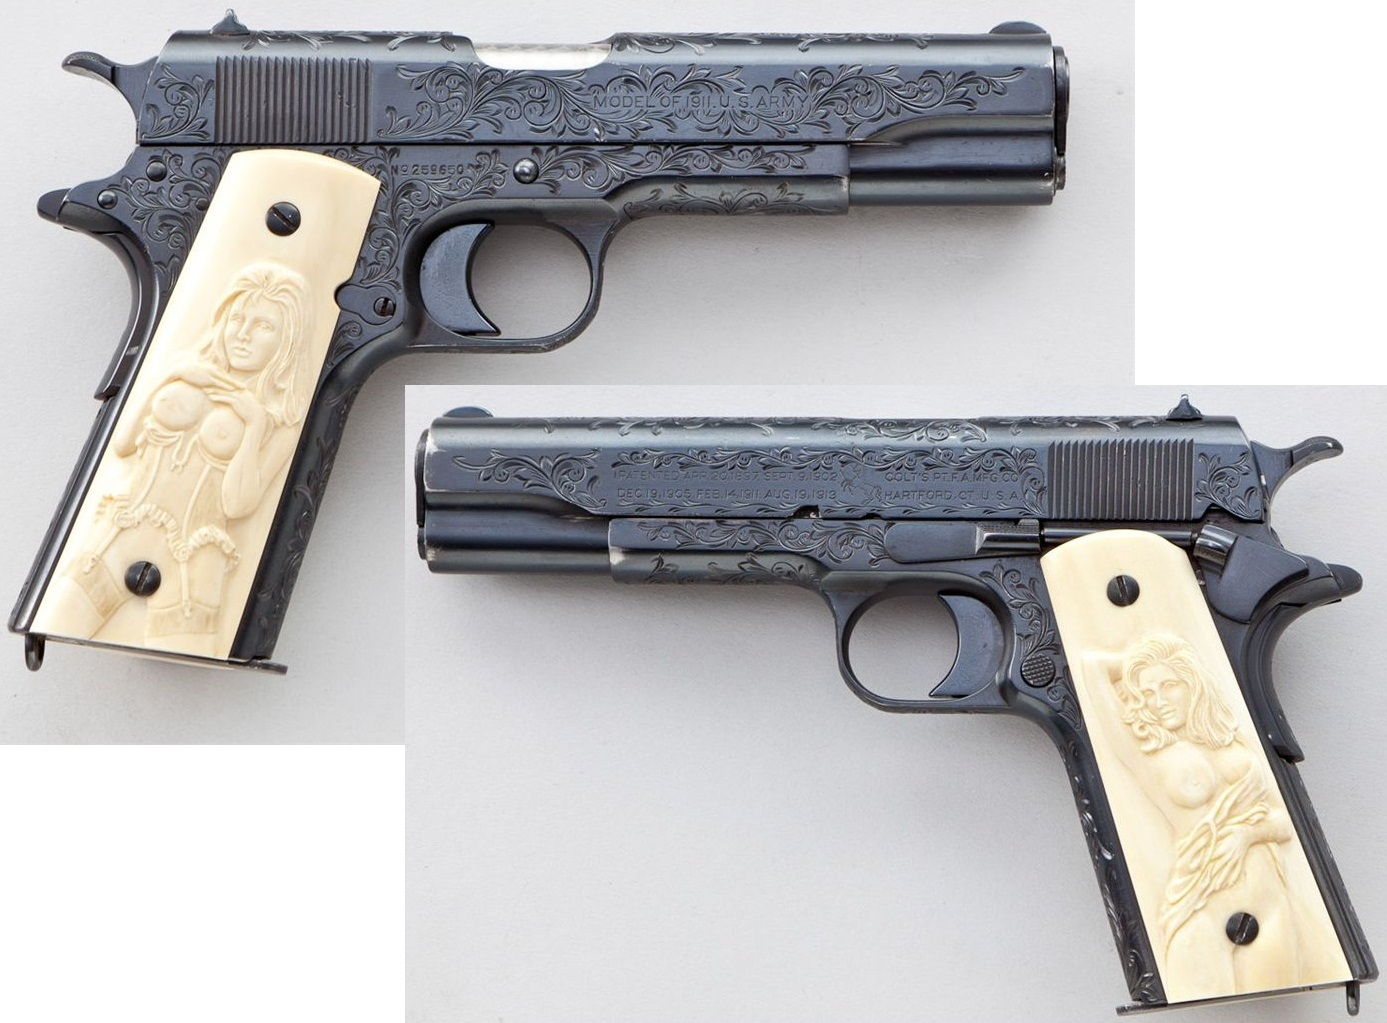 Engraved Colt Model 1911 Semi-Automatic Pistol